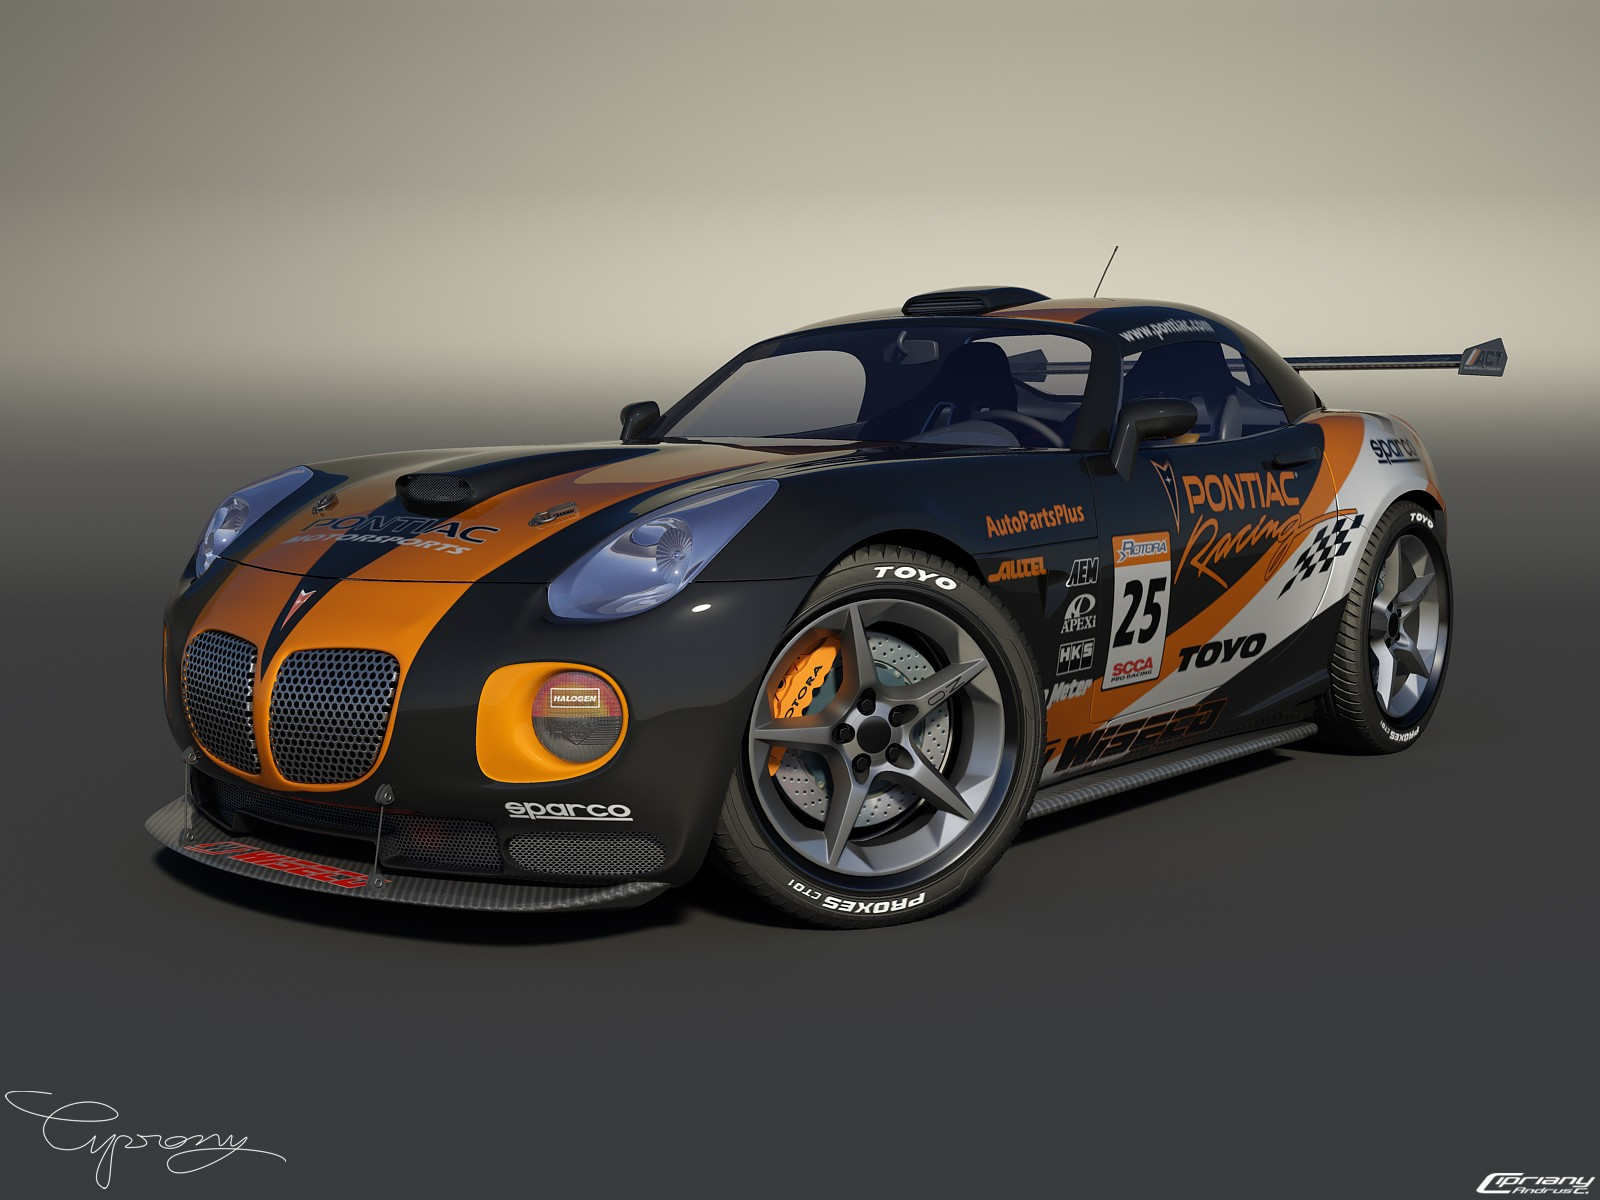 Pontiac Solstice tuned by